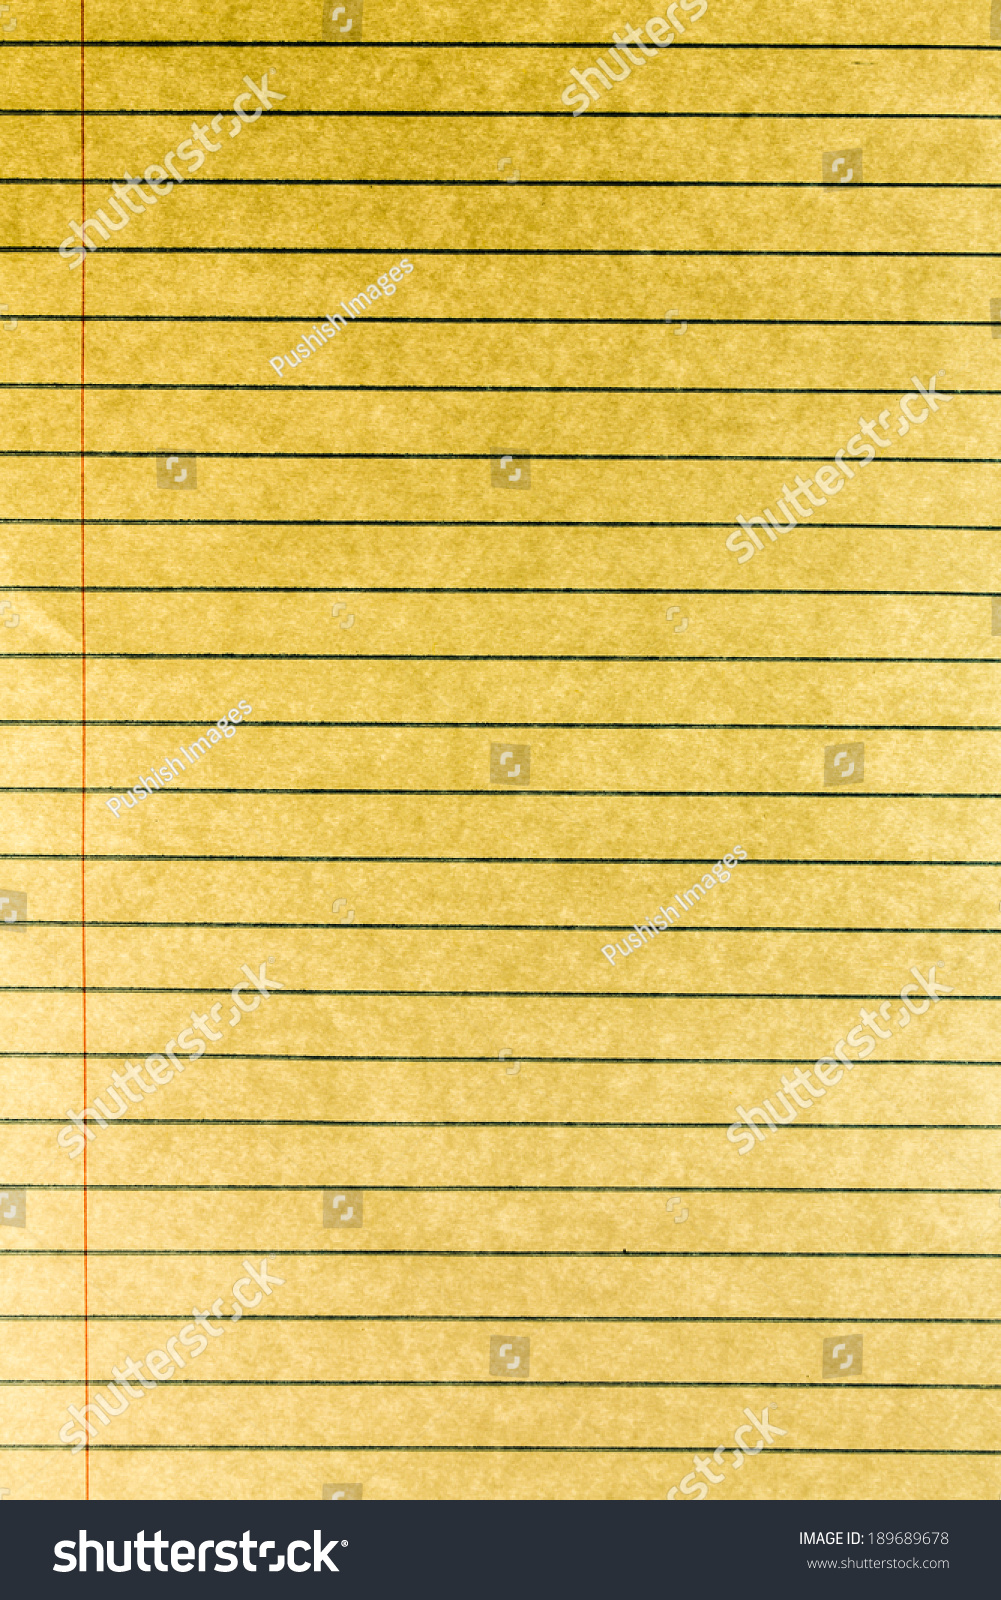 yellow notebook paper background stock photo (edit now) 189689678